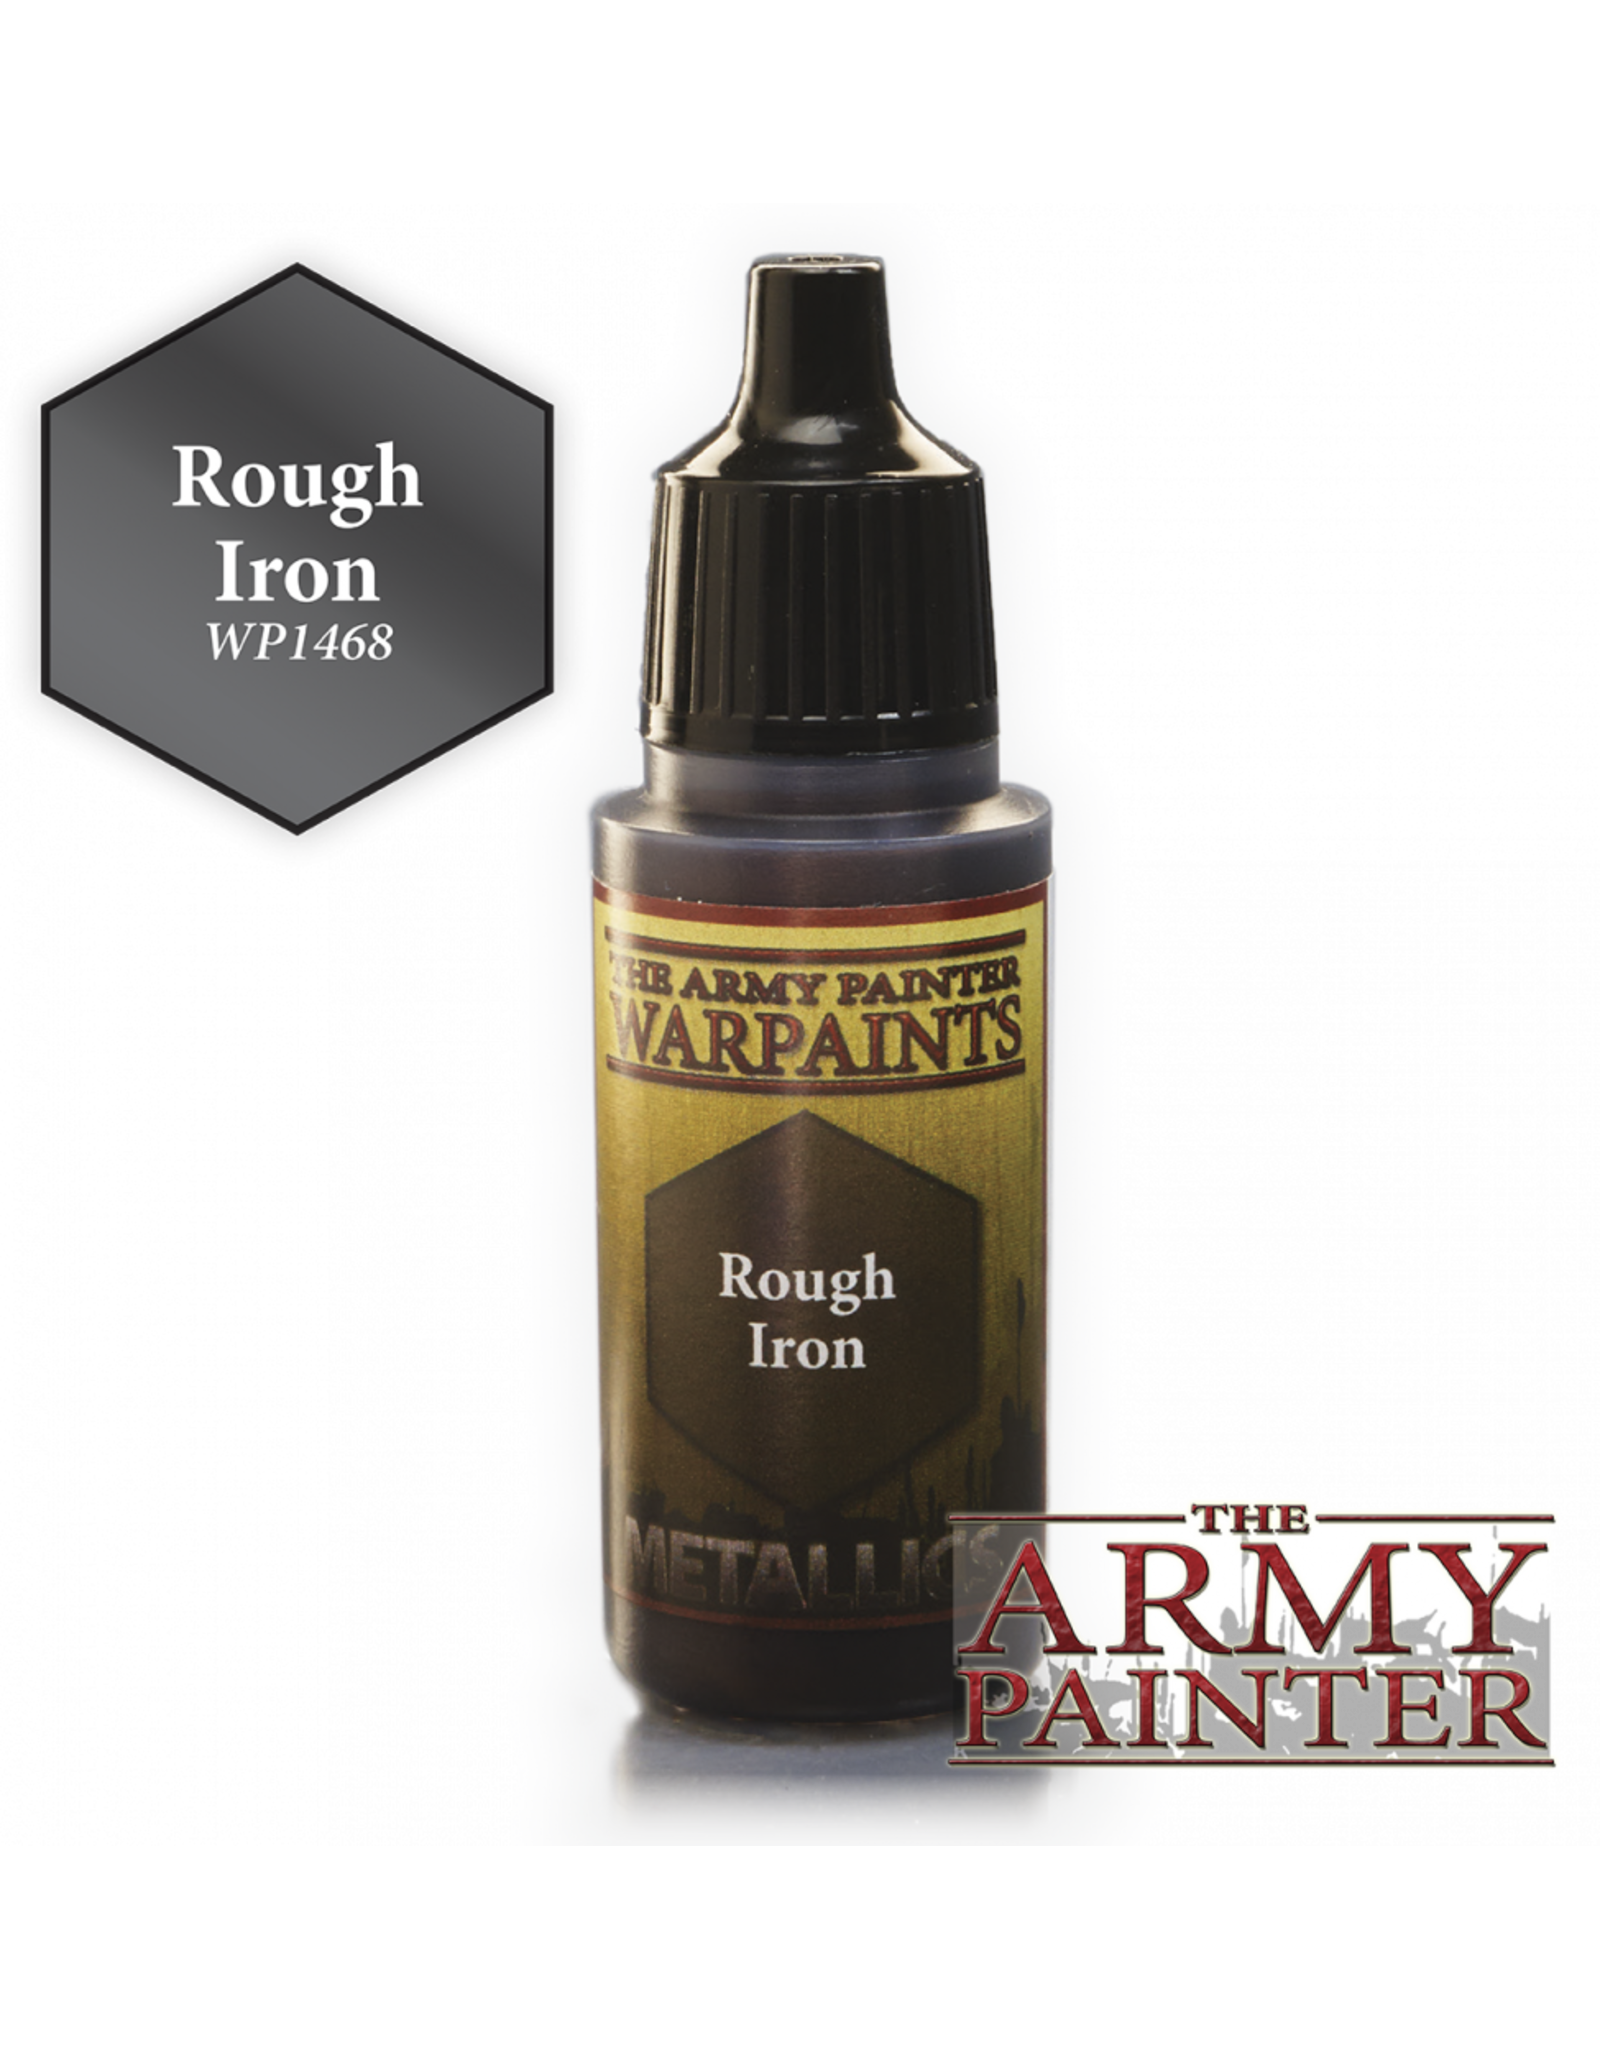 THE ARMY PAINTER ARMY PAINTER WARPAINTS METALLICS ROUGH IRON